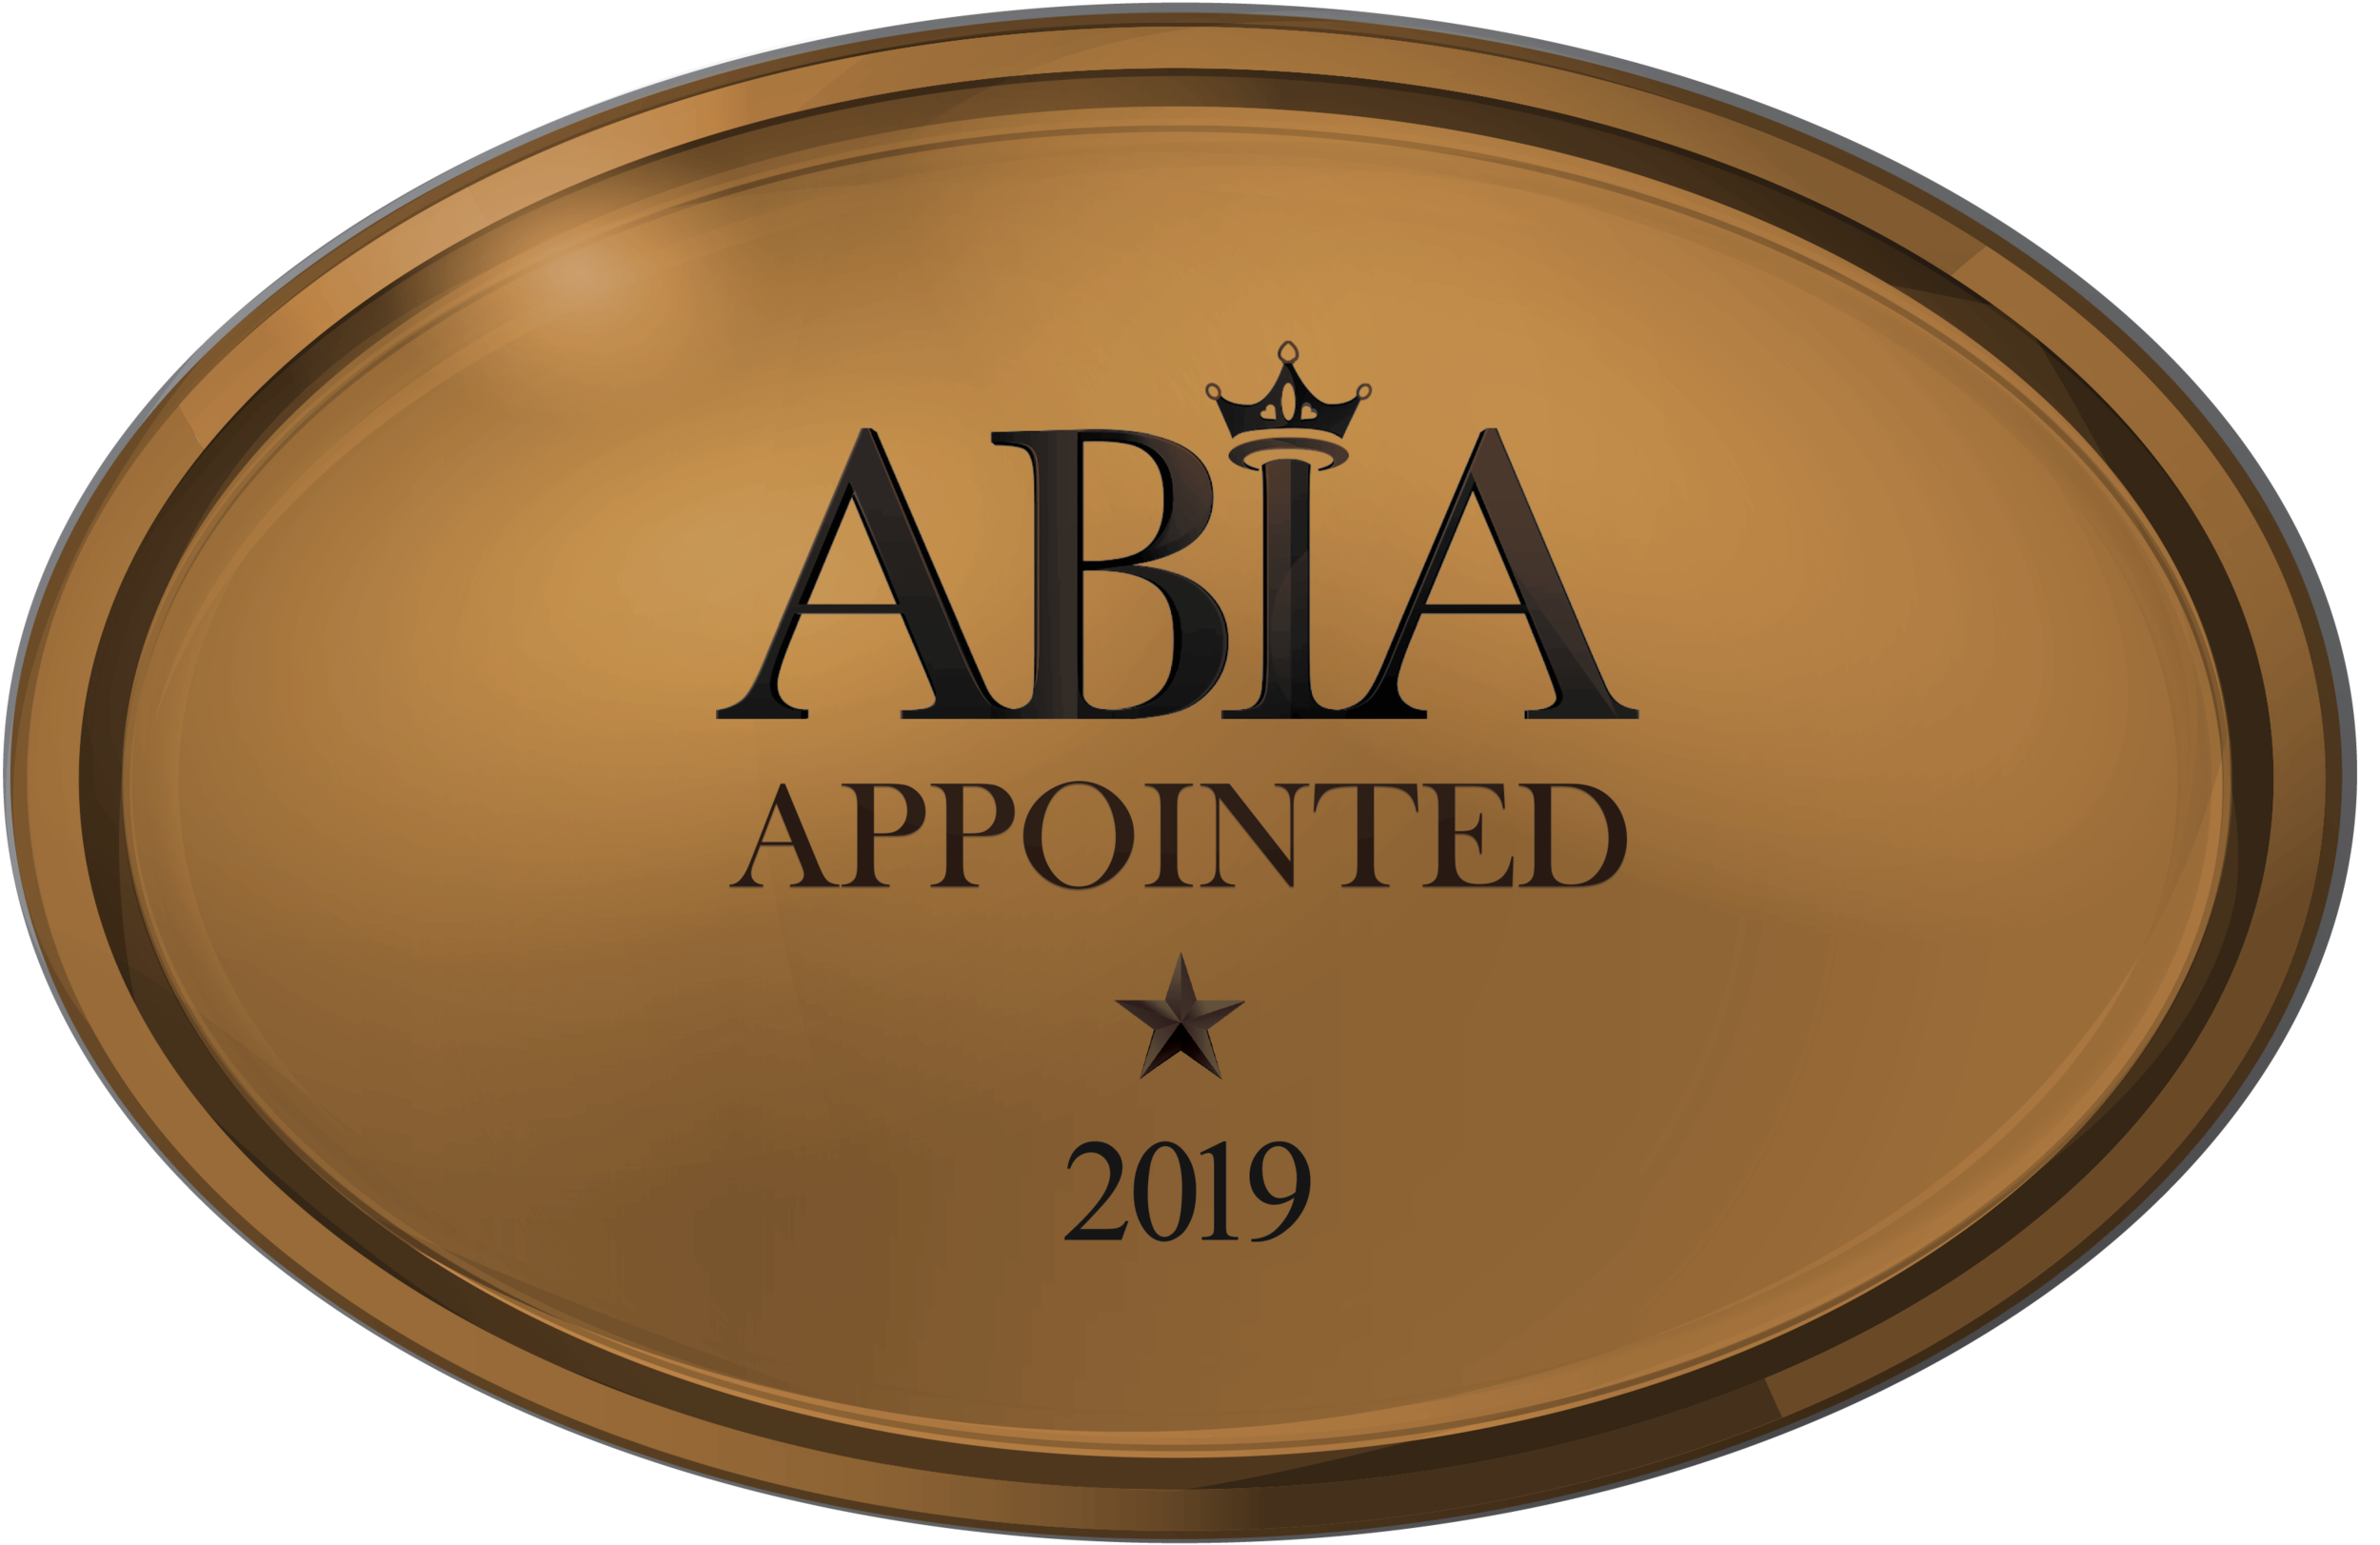 abia-appointed-member-2019-1.png